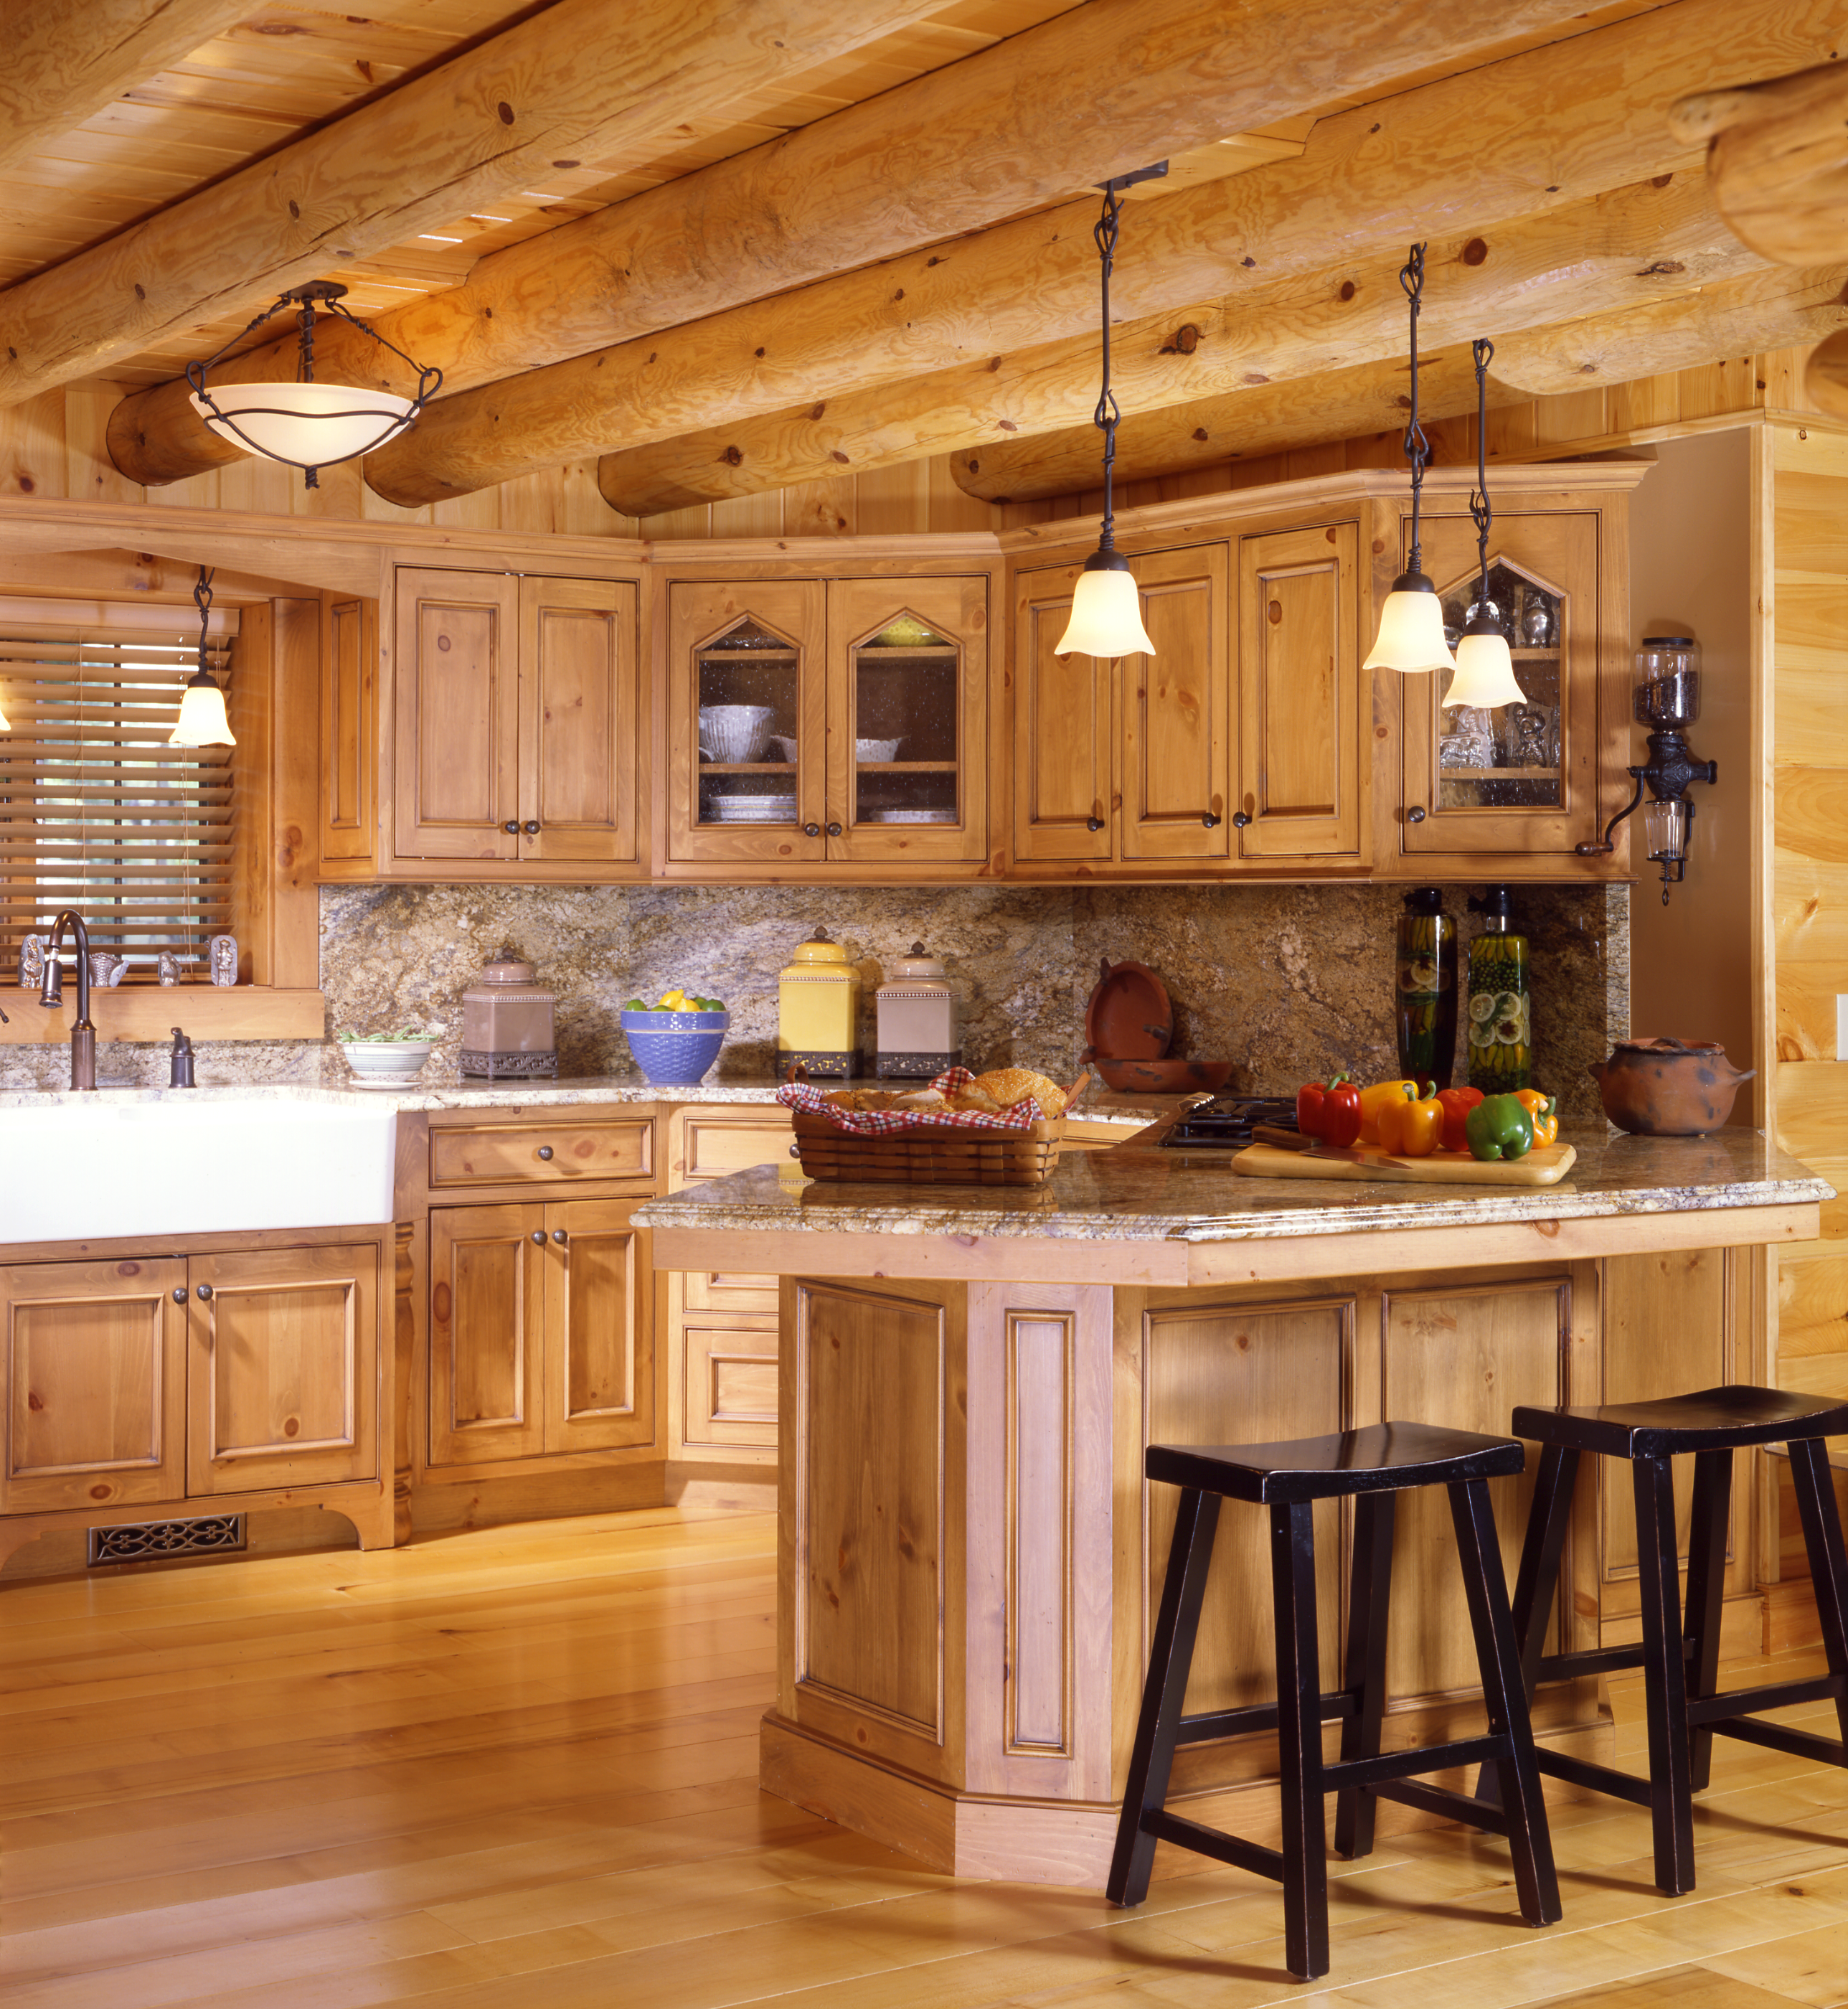 Delectable Cabin Kitchen Design Ideas : Rustic Cabin Kitchen Ideas ...